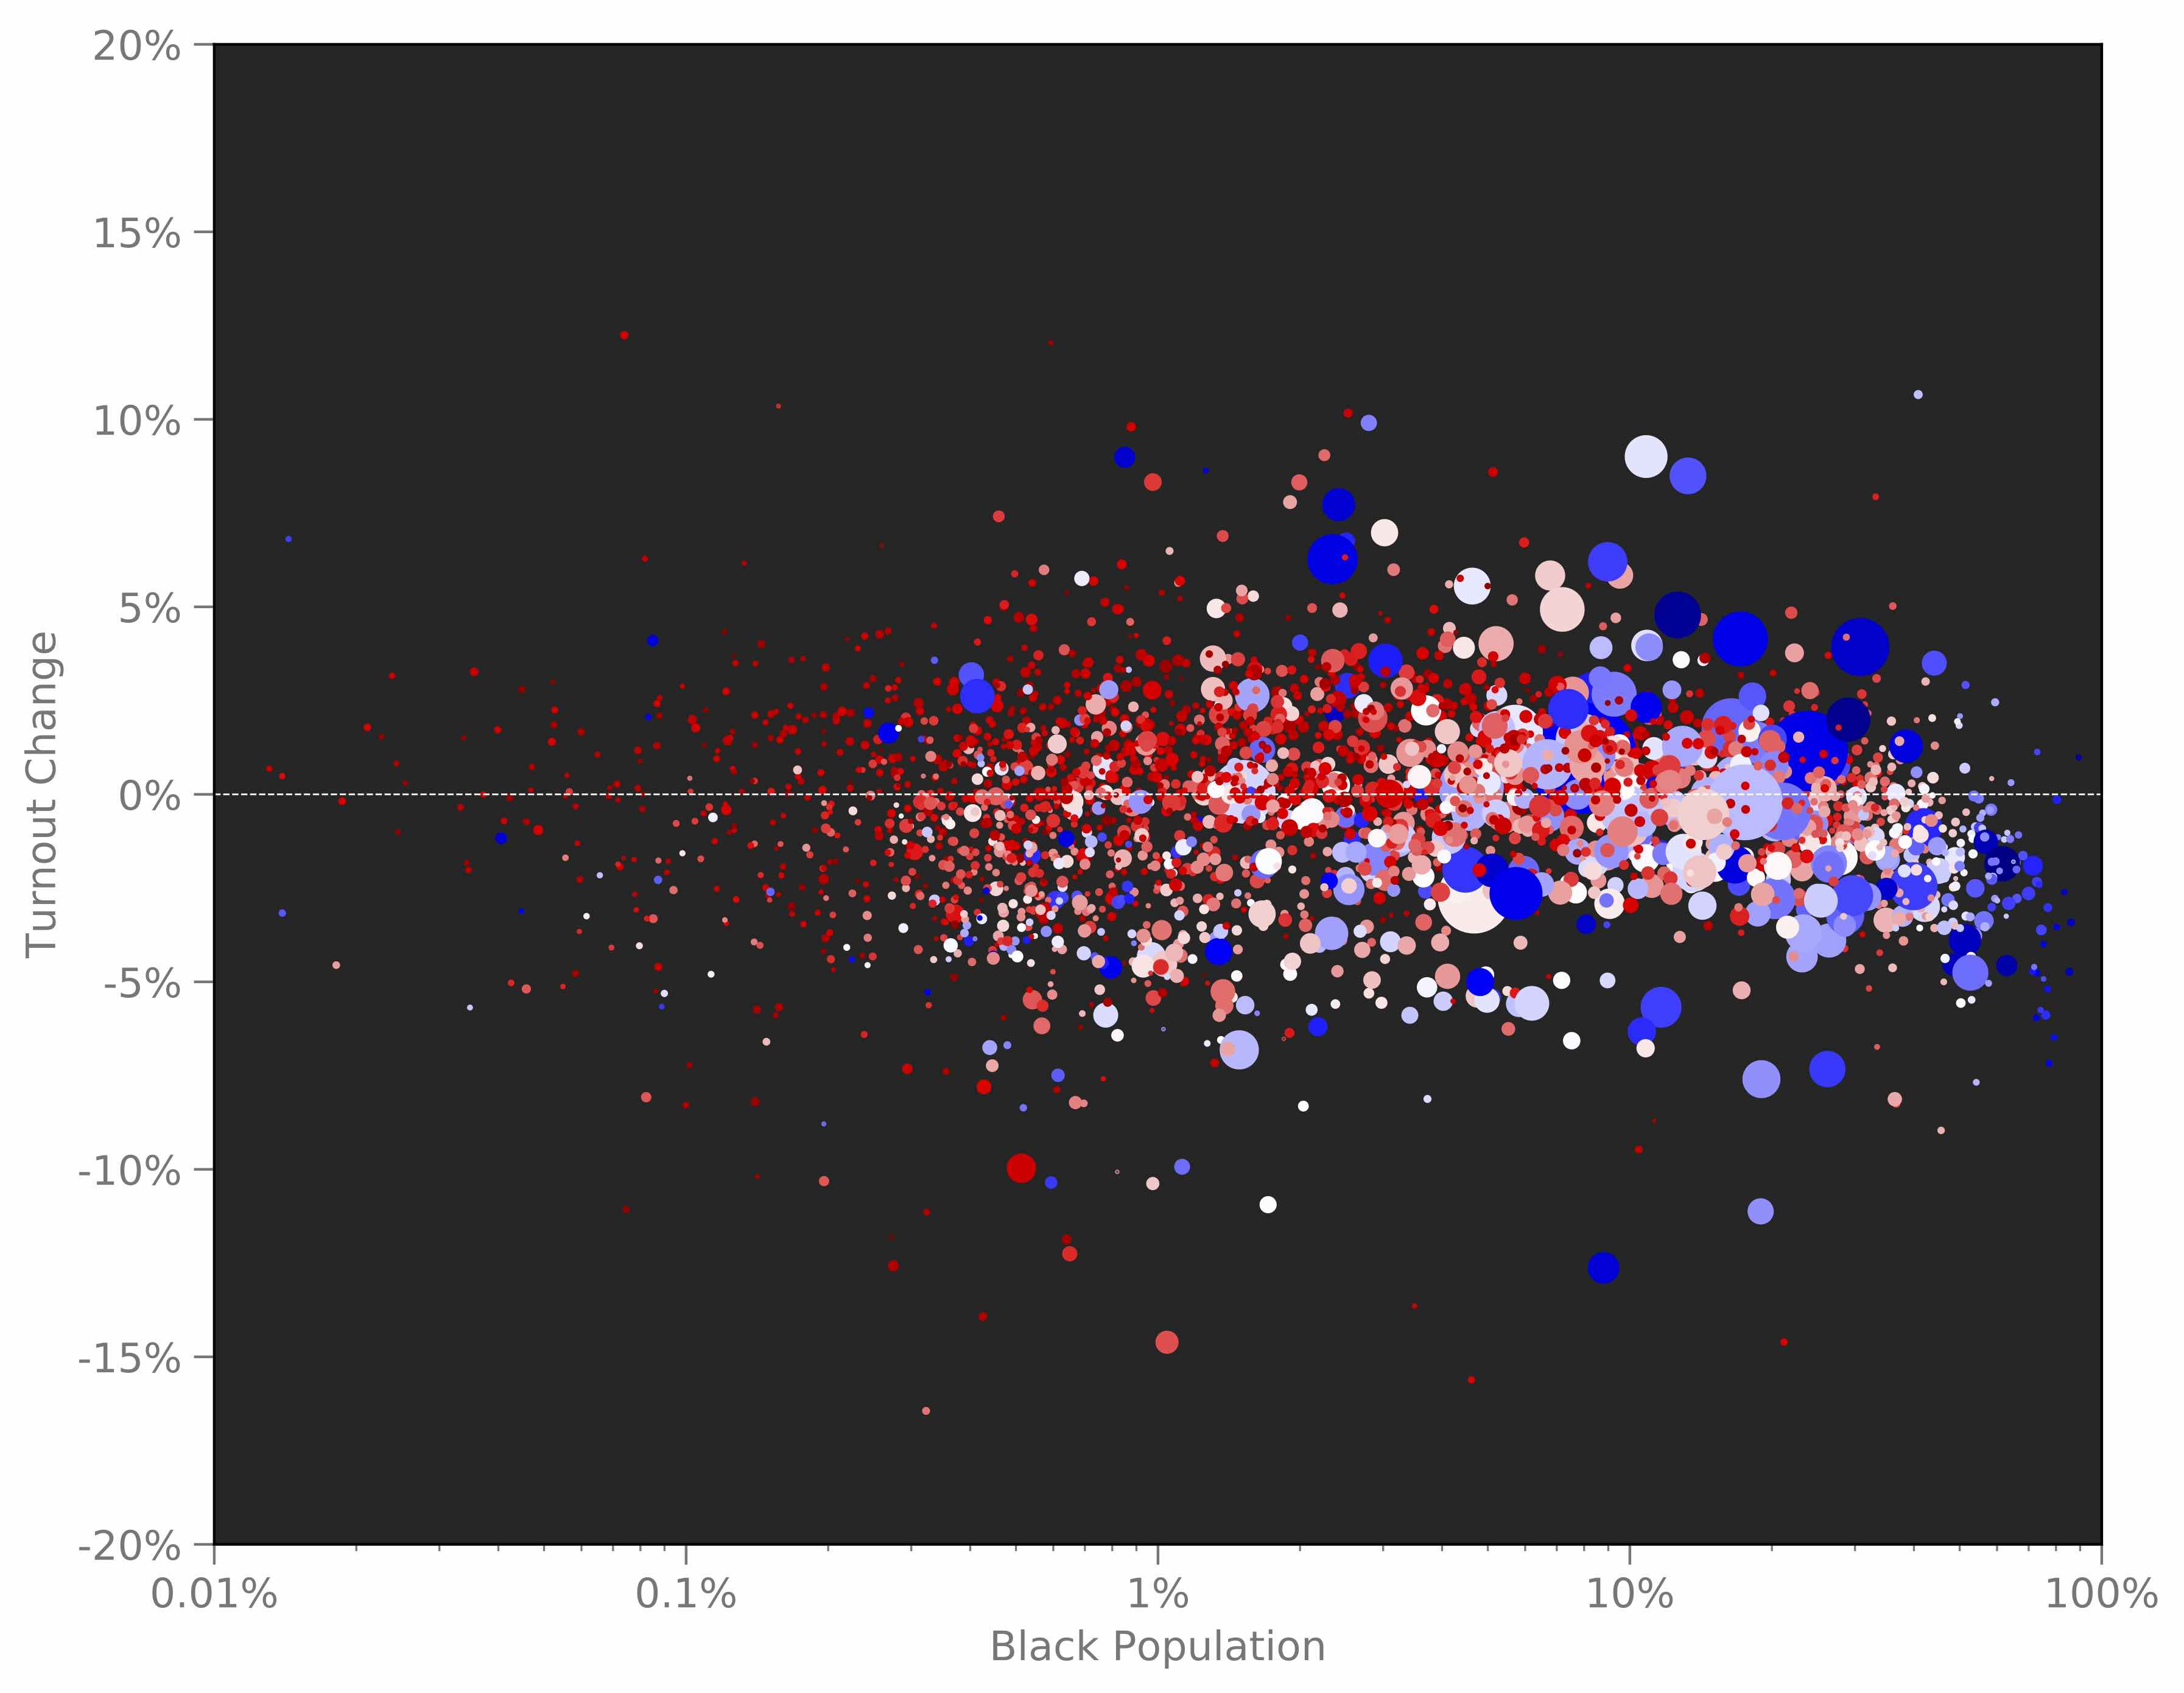 Figure 2: Turnout change compared to percentage of the population which is black. Each bubble is a US county, and the size of the bubble corresponds to the population of the county. Bubble color corresponds to the 2016 presidential election vote (red = Republican, blue = Democrat, white = neutral). Counties with a high proportion of black people (on the far right in this plot) clearly had turnout that was a few percentage points lower than in 2012. The X-axis is log-scaled so that all the bubbles don't overlap each other. Click to download the image.